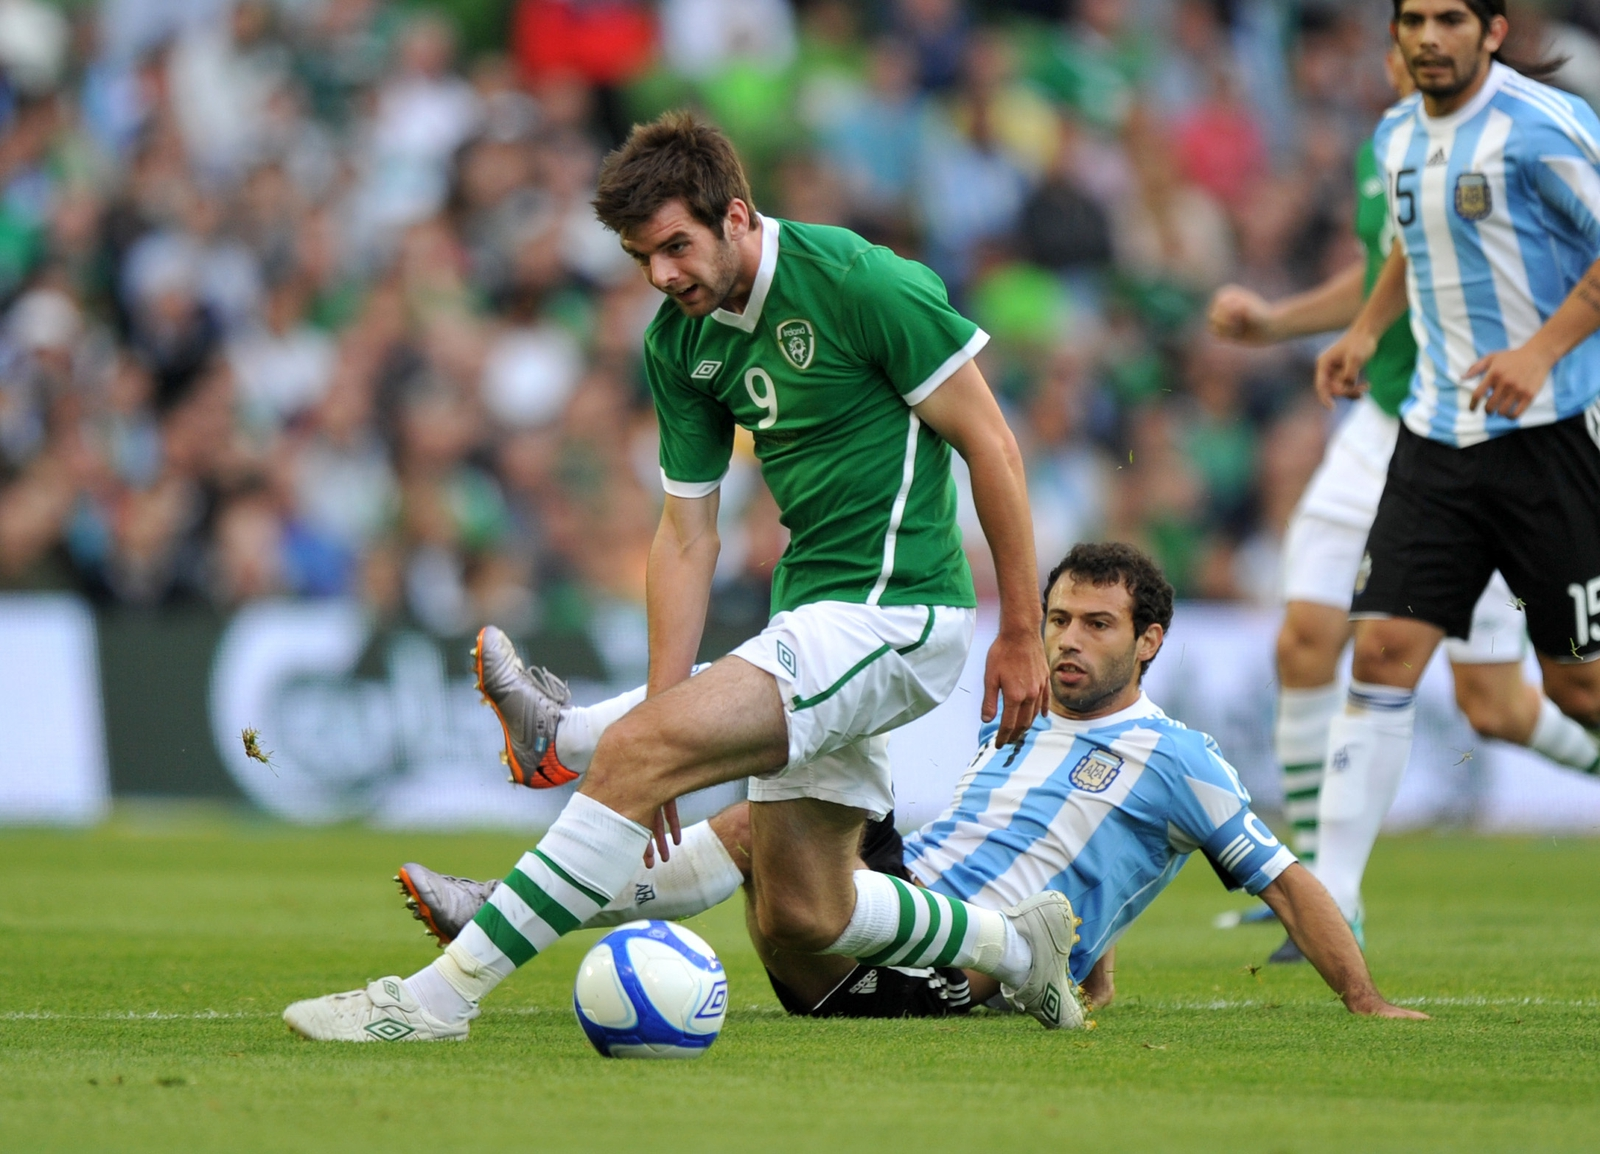 Image - Cillian Sheridan tackled by Javier Mascherano of Argentina in 2010 during one of his three Ireland senior caps days before linking up with CSKA